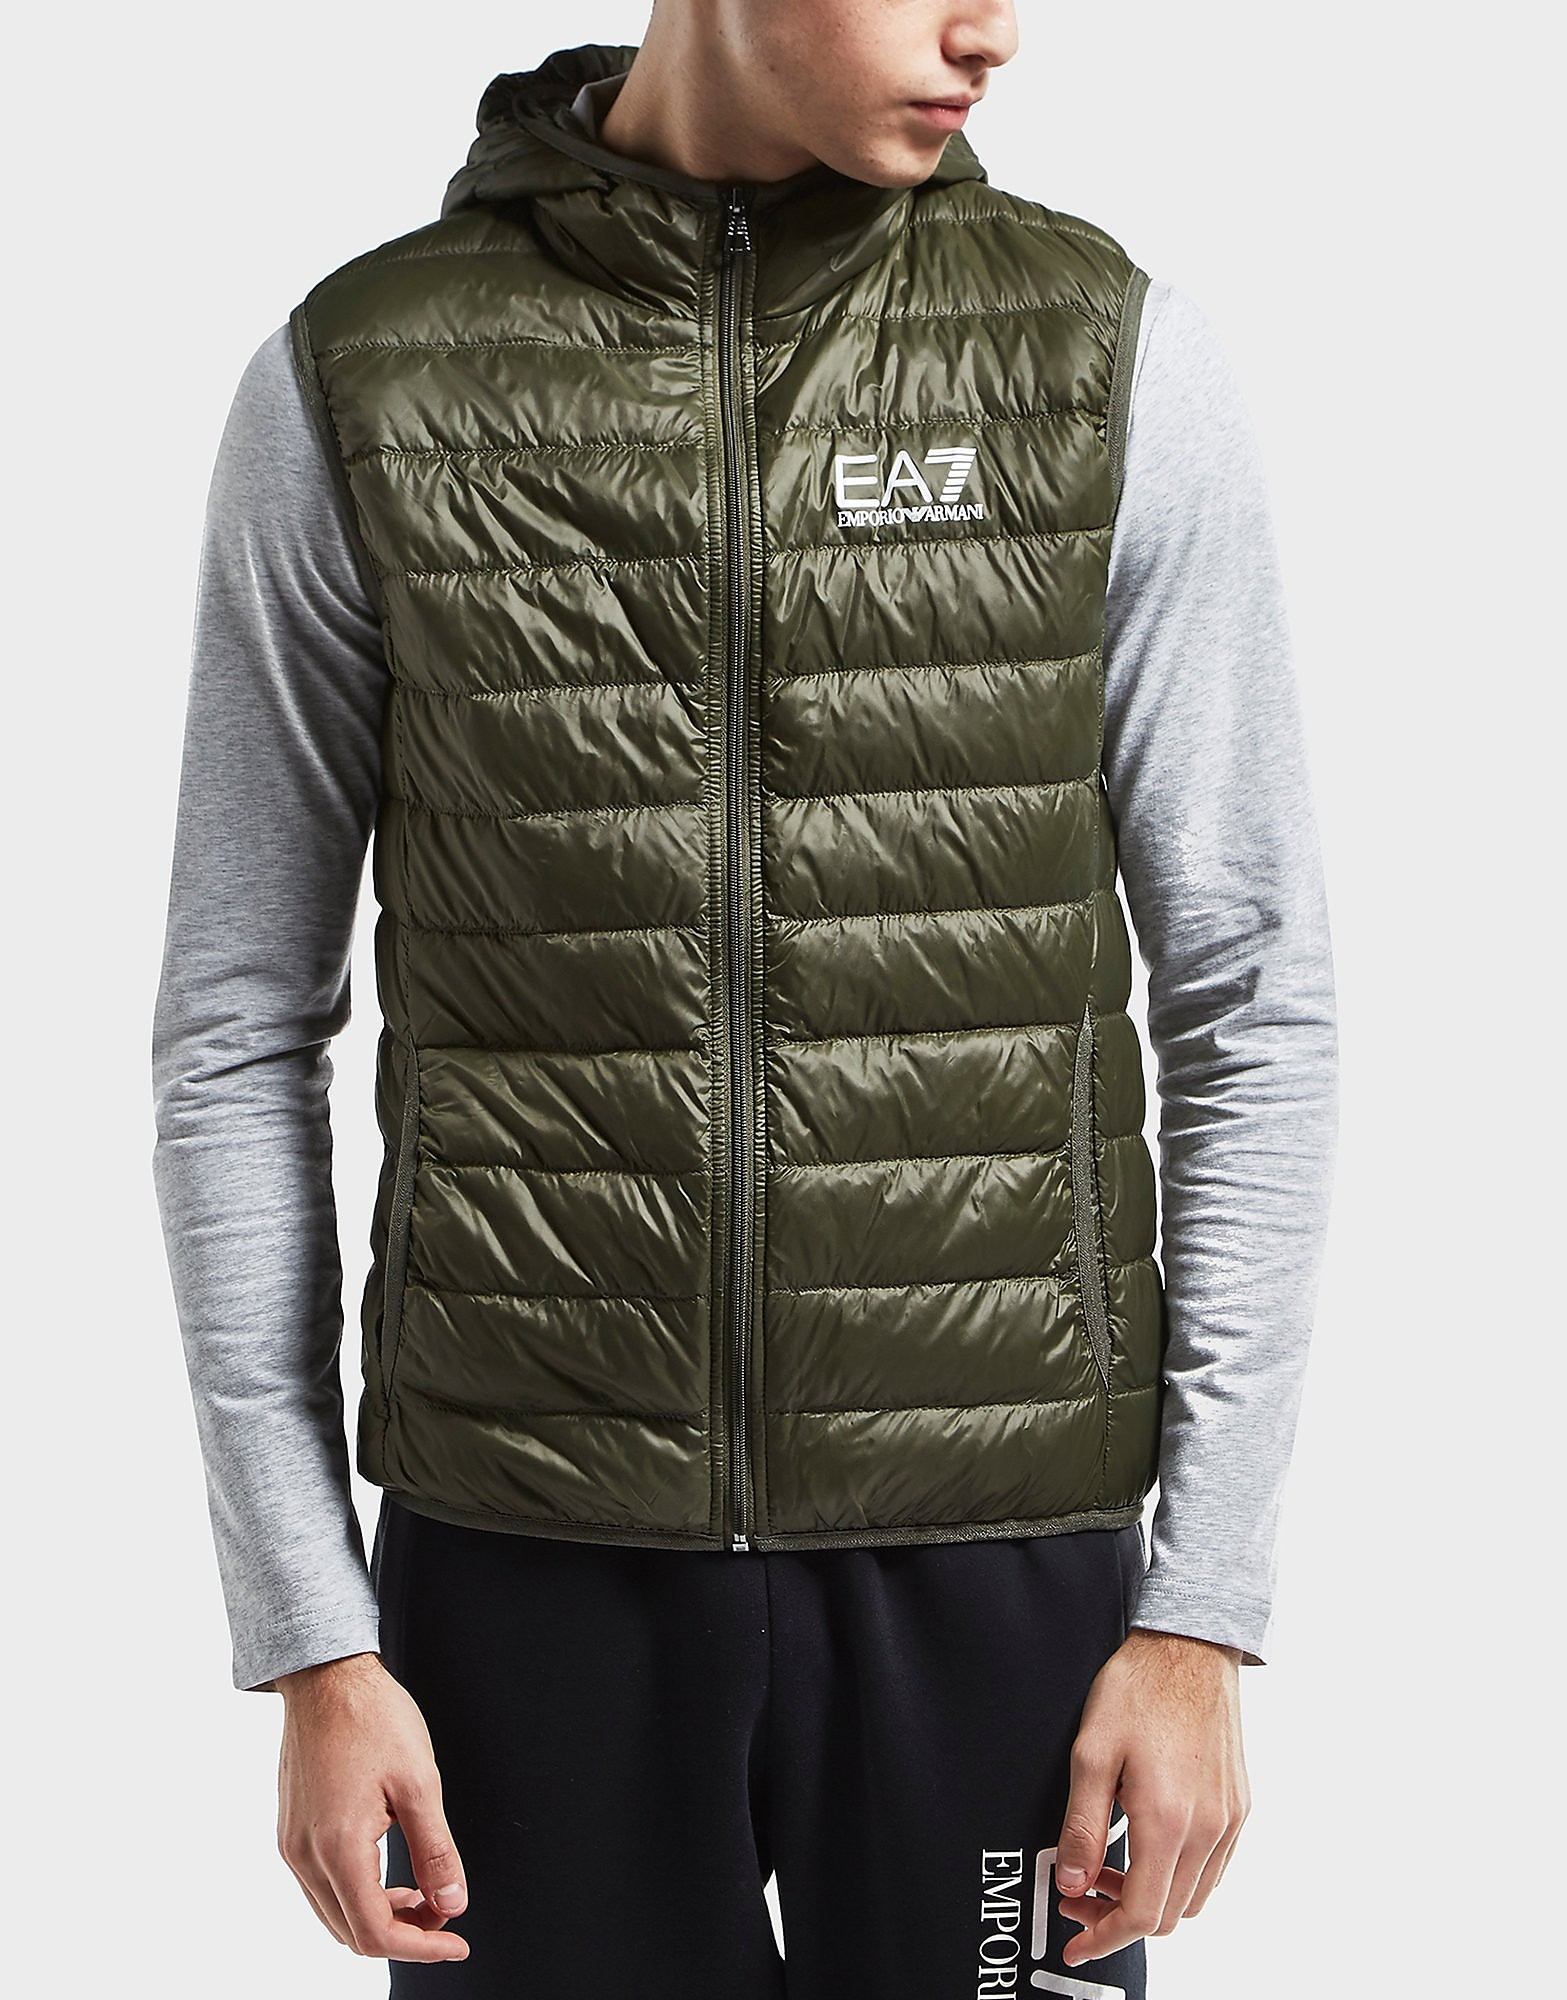 Emporio Armani EA7 Hooded Padded Gilet - Exclusive